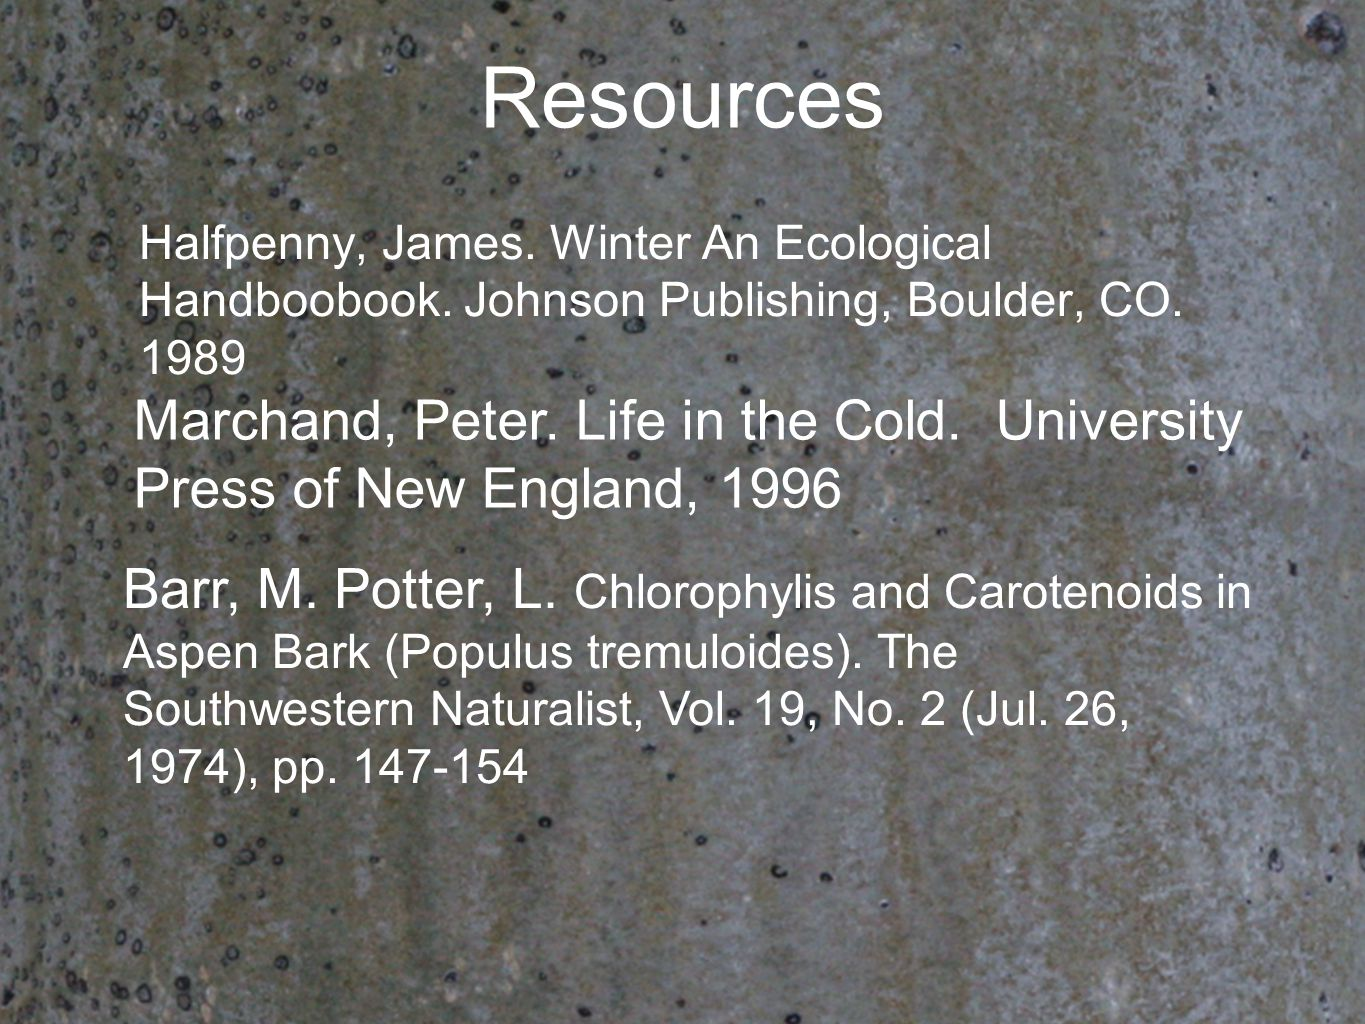 Resources Halfpenny, James. Winter An Ecological Handboobook. Johnson Publishing, Boulder, CO. 1989 Marchand, Peter. Life in the Cold. University Pres